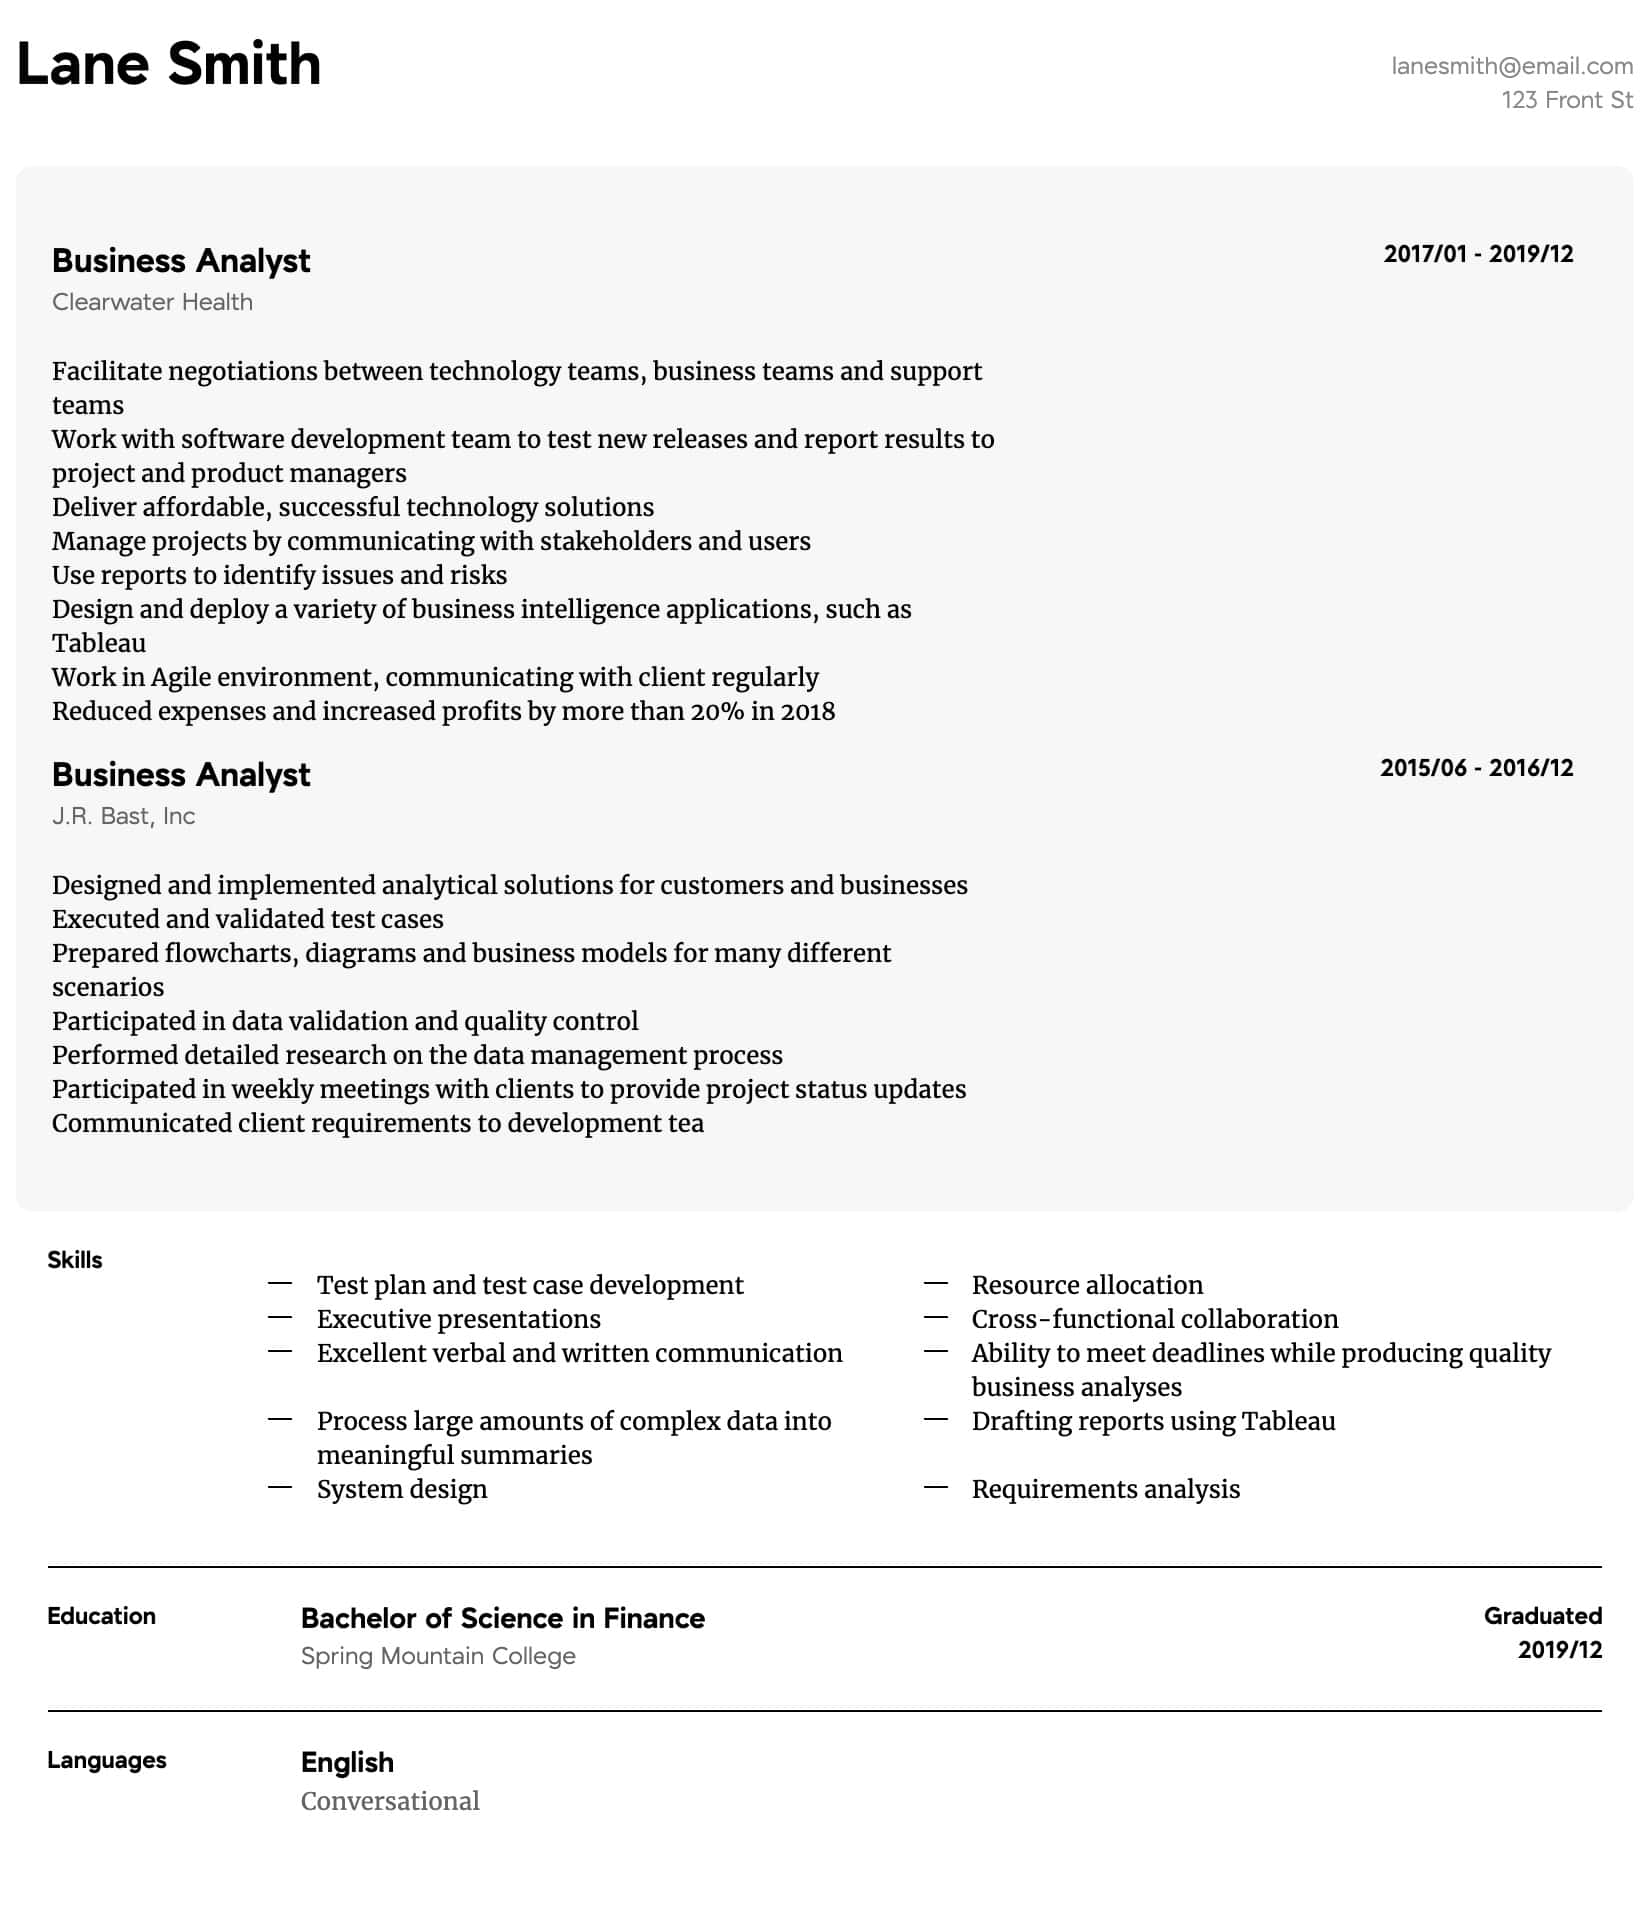 business analyst resume samples all experience levels for experienced intermediate Resume Resume For Experienced Business Analyst